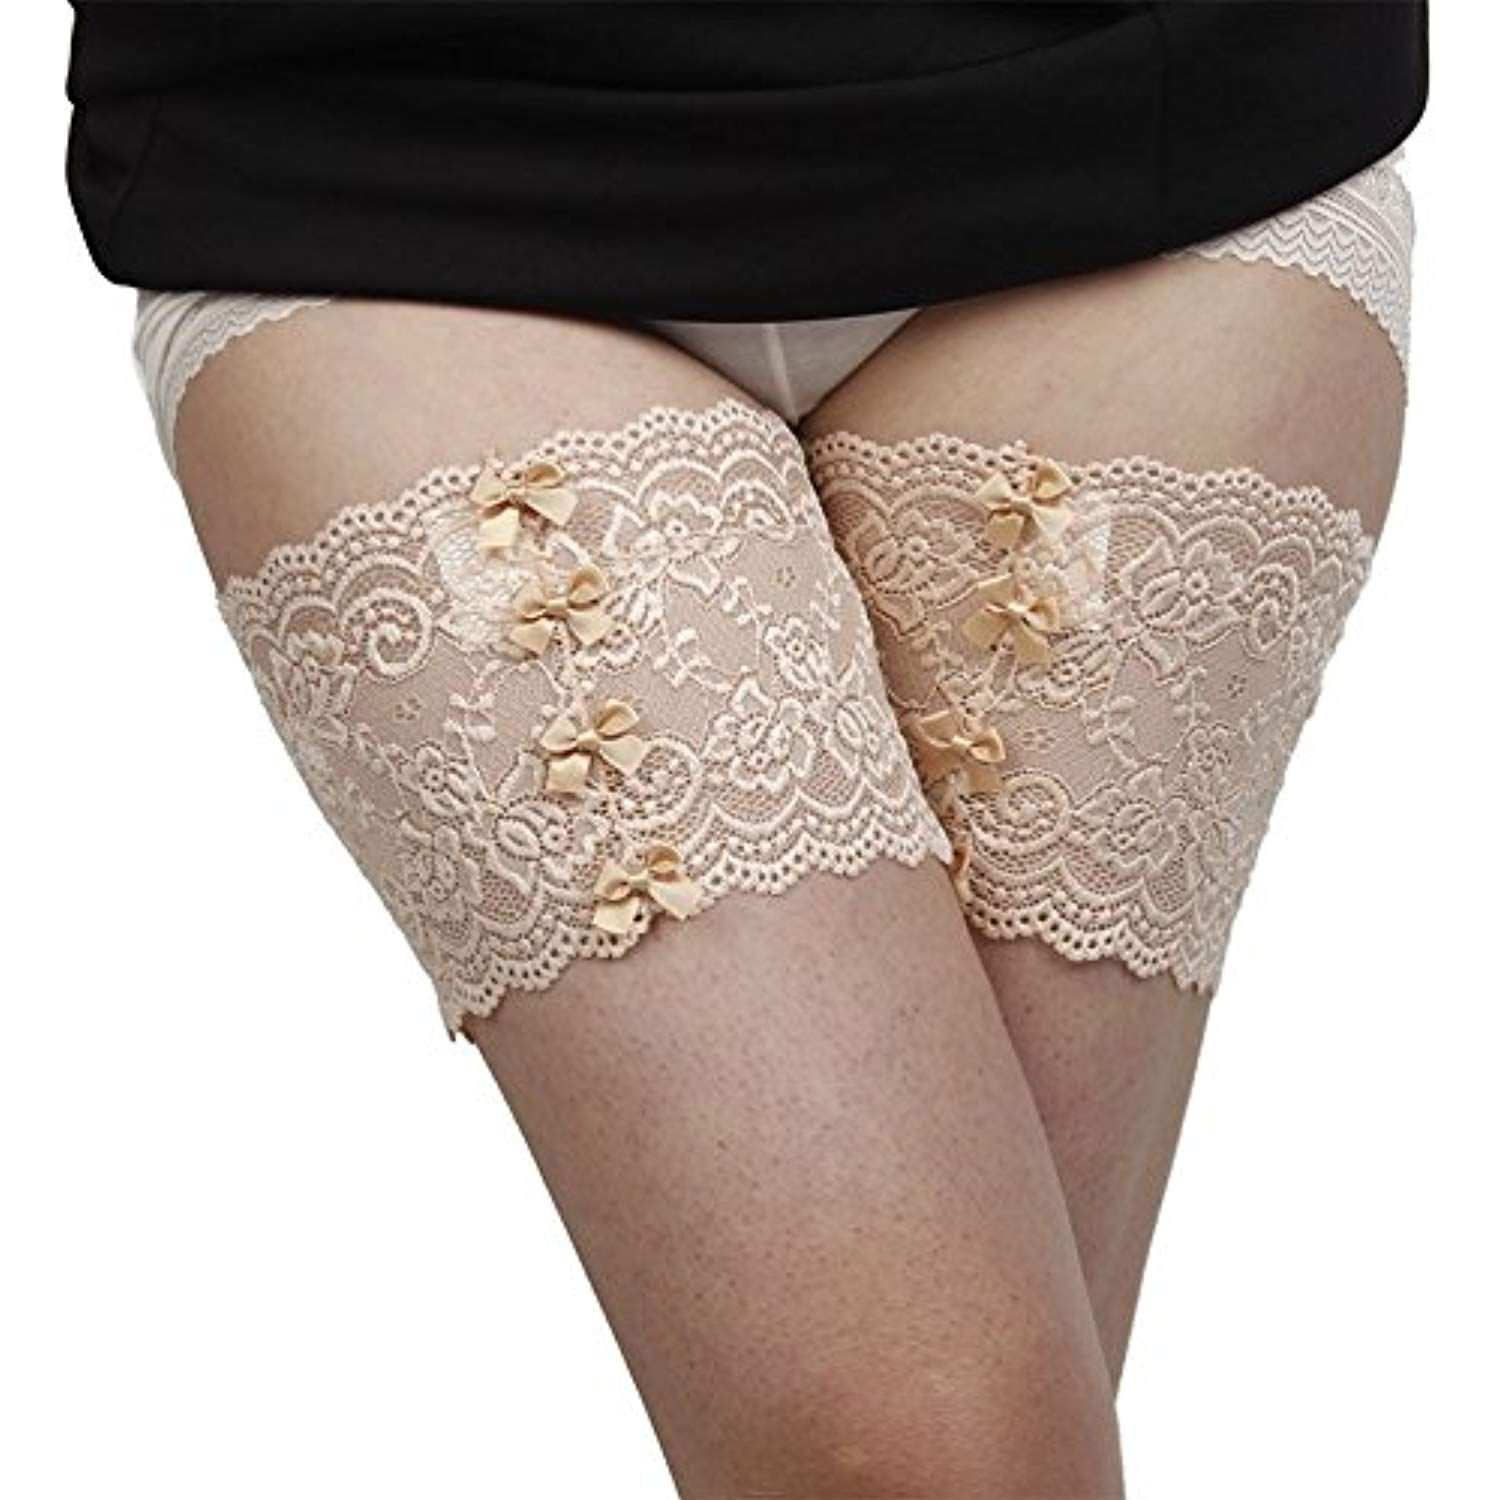 Women Sexy Lace Anti-Chafing No-Slip Silicone Thigh Bands with Bowknots    94201780c